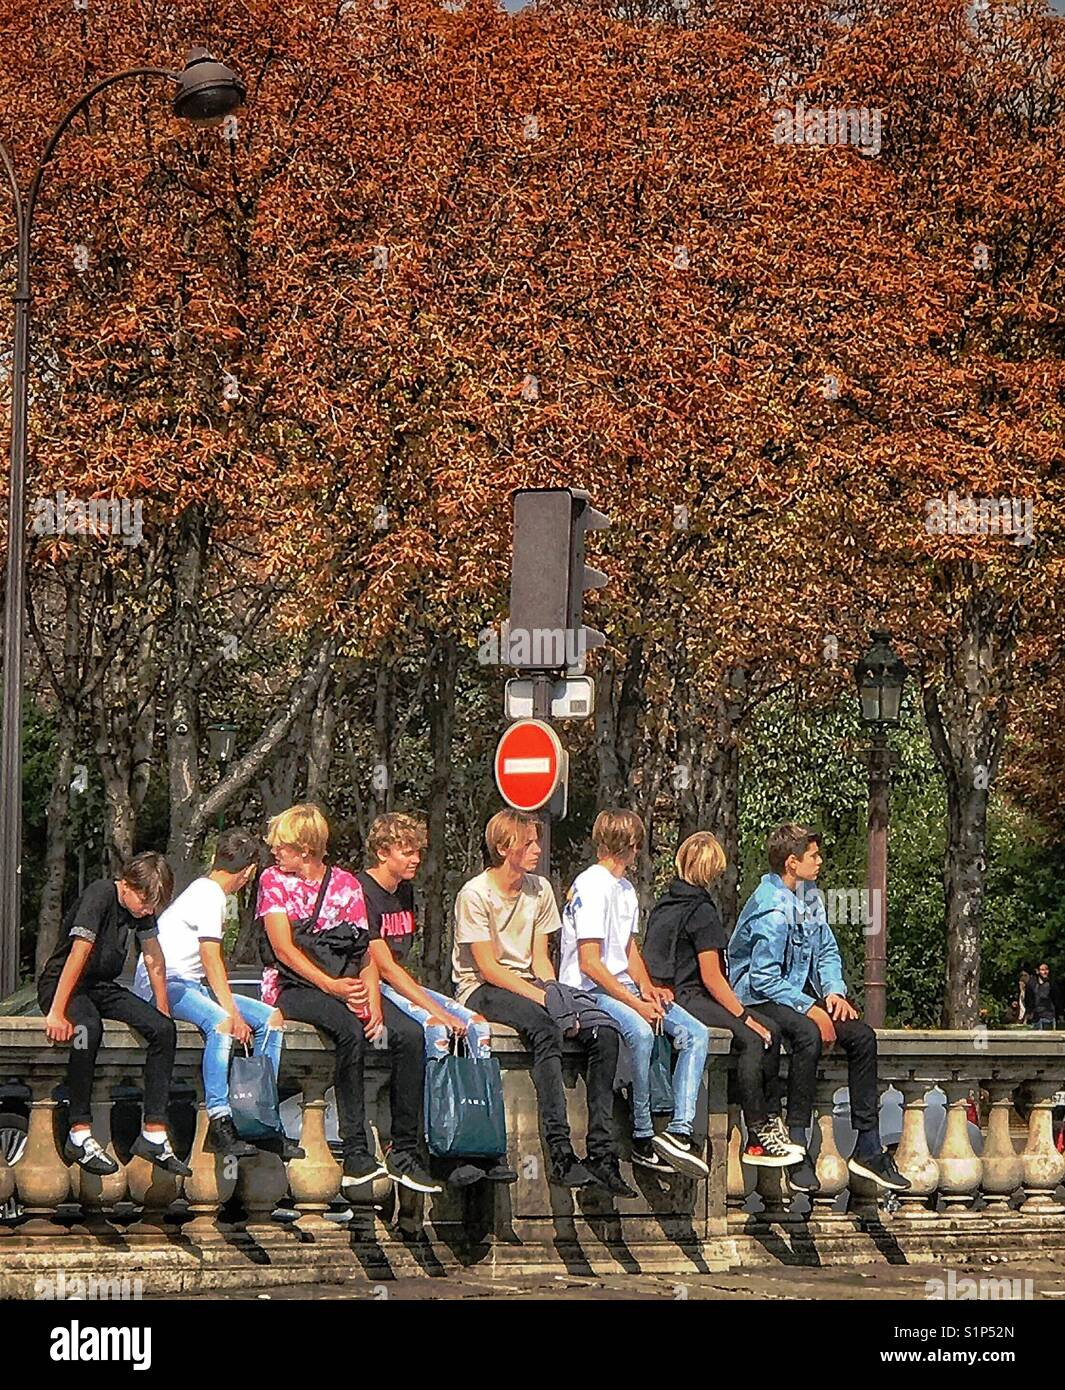 Group of teenage boys hanging out together. - Stock Image